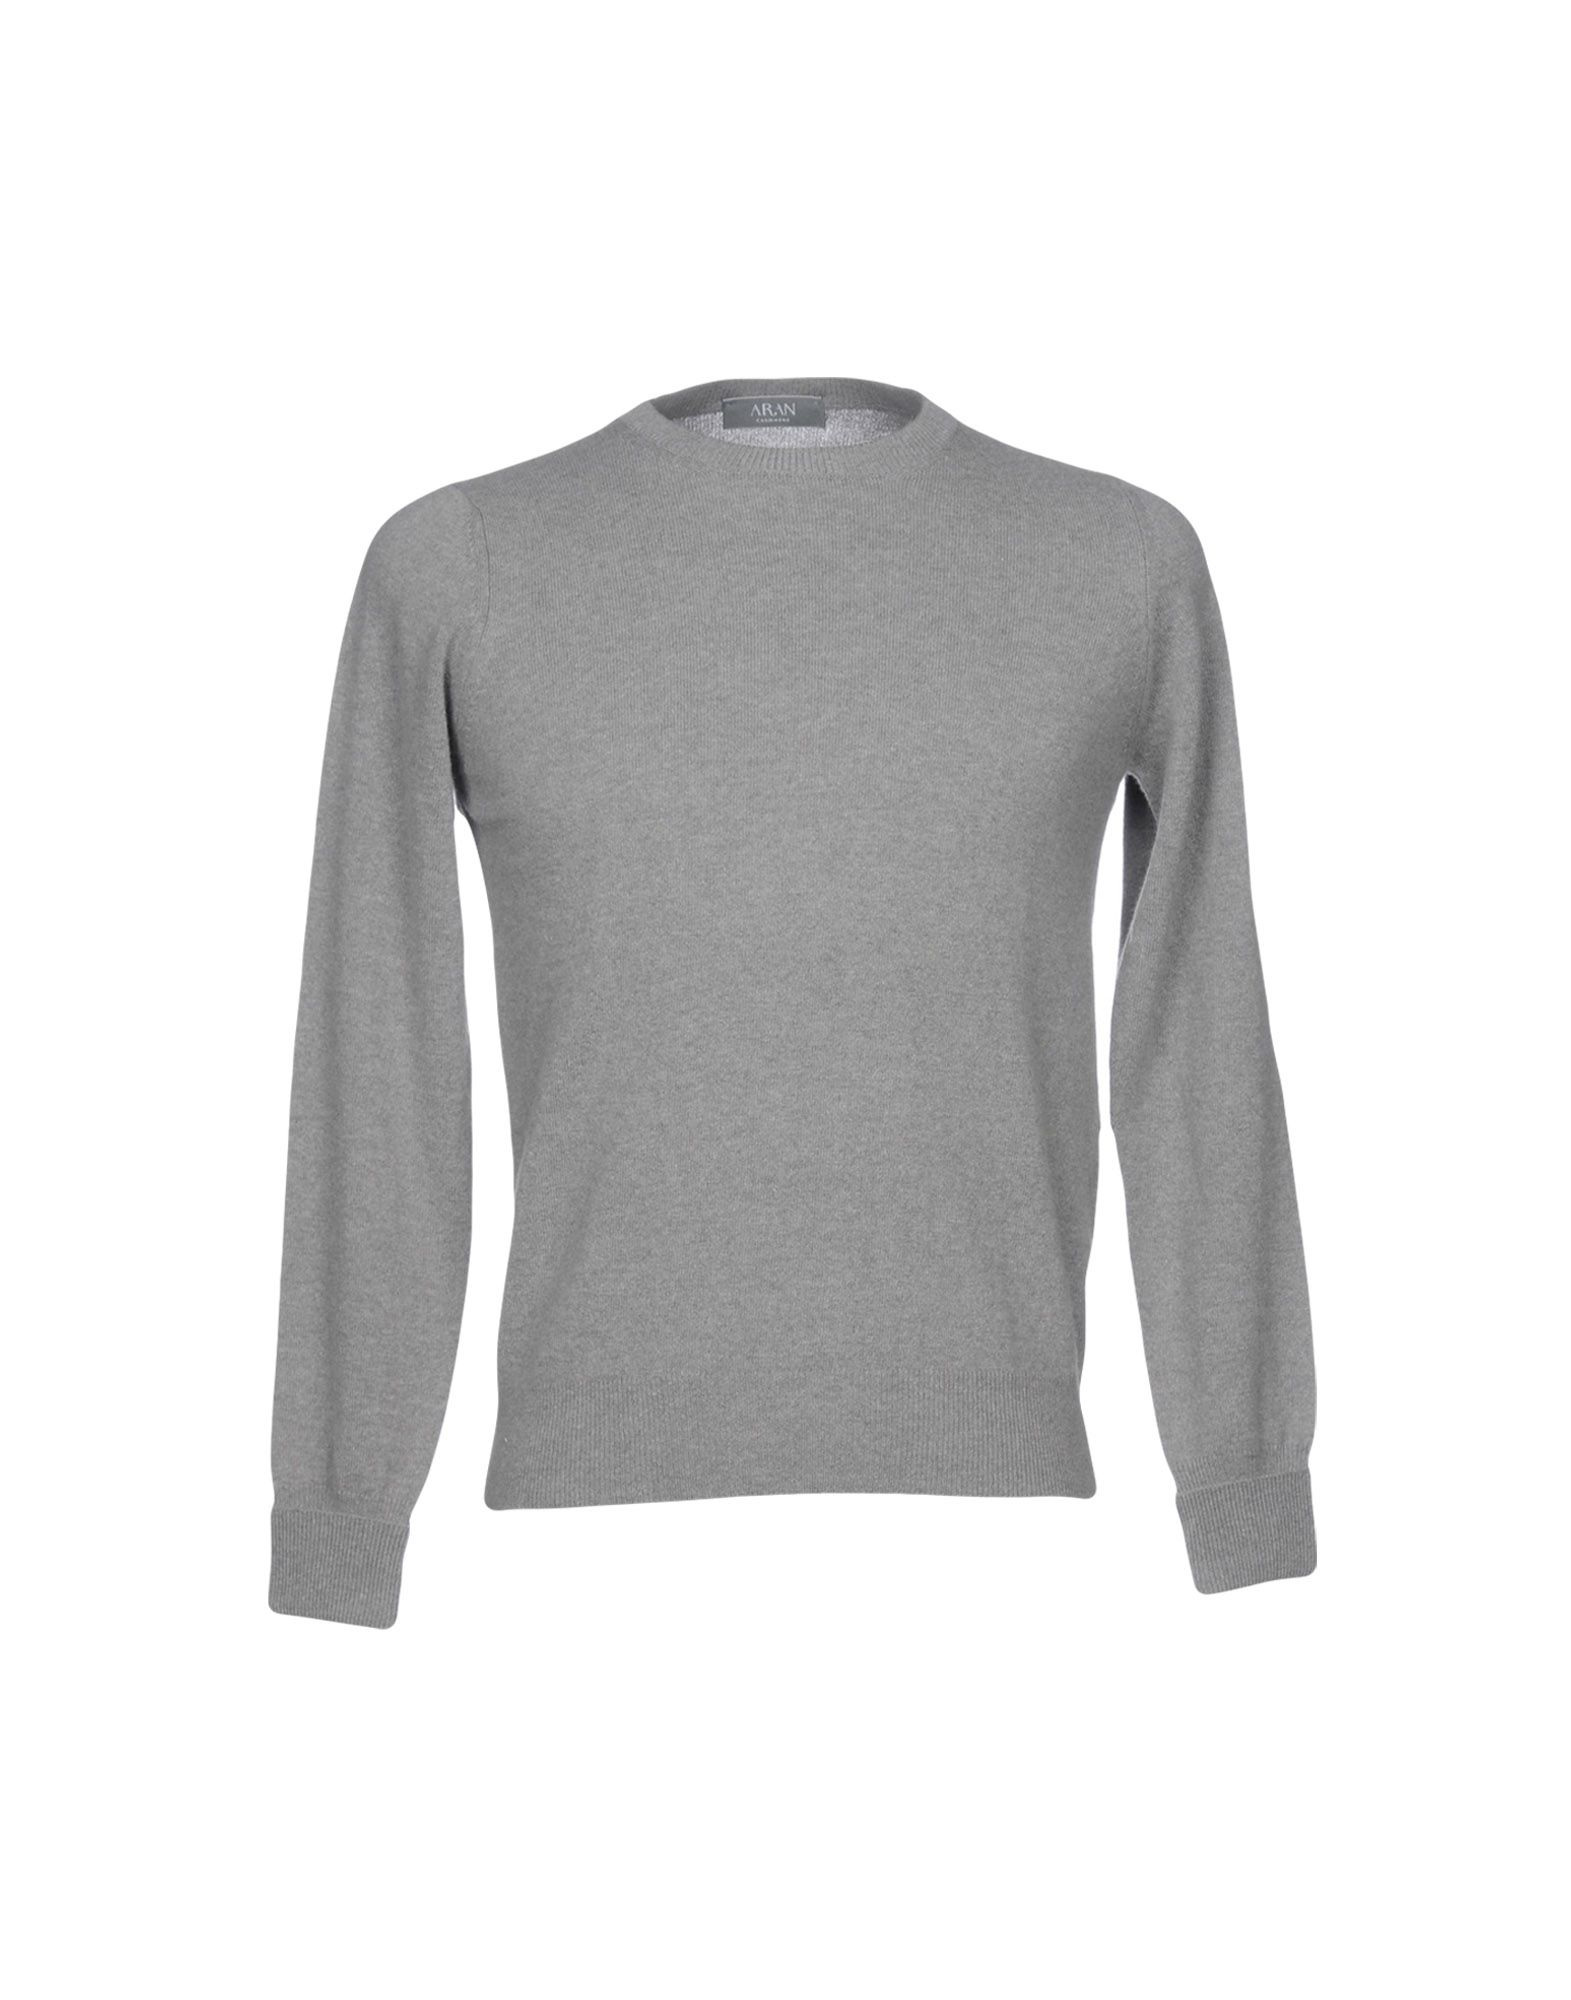 ARAN CASHMERE Sweater in Grey